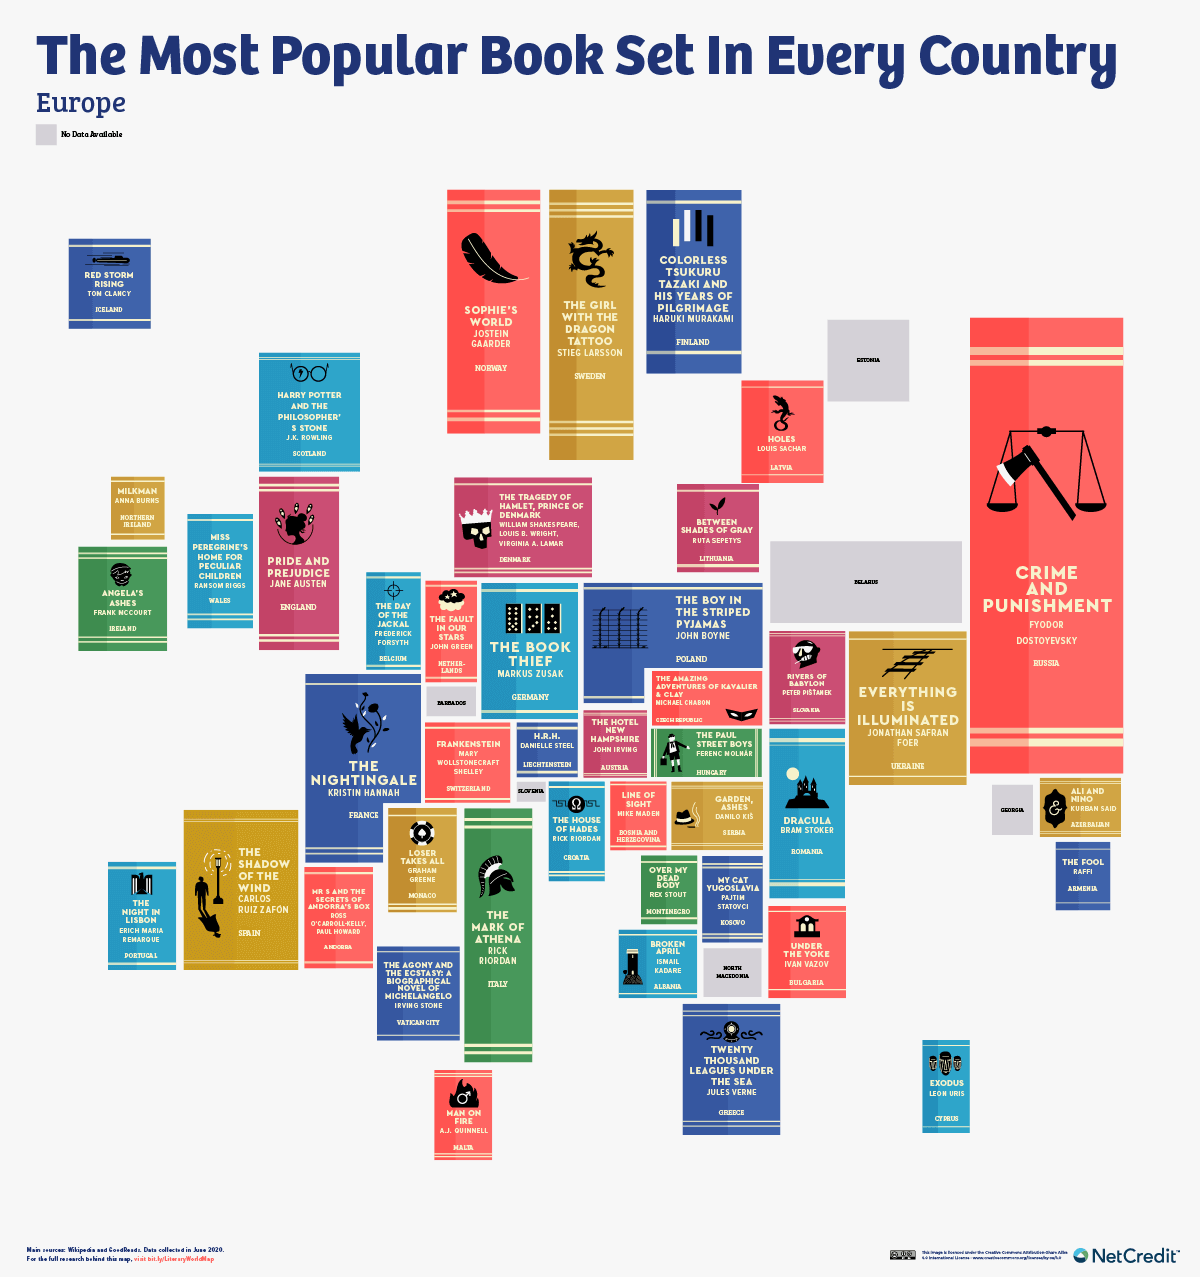 Most Popular Book Set in Europe